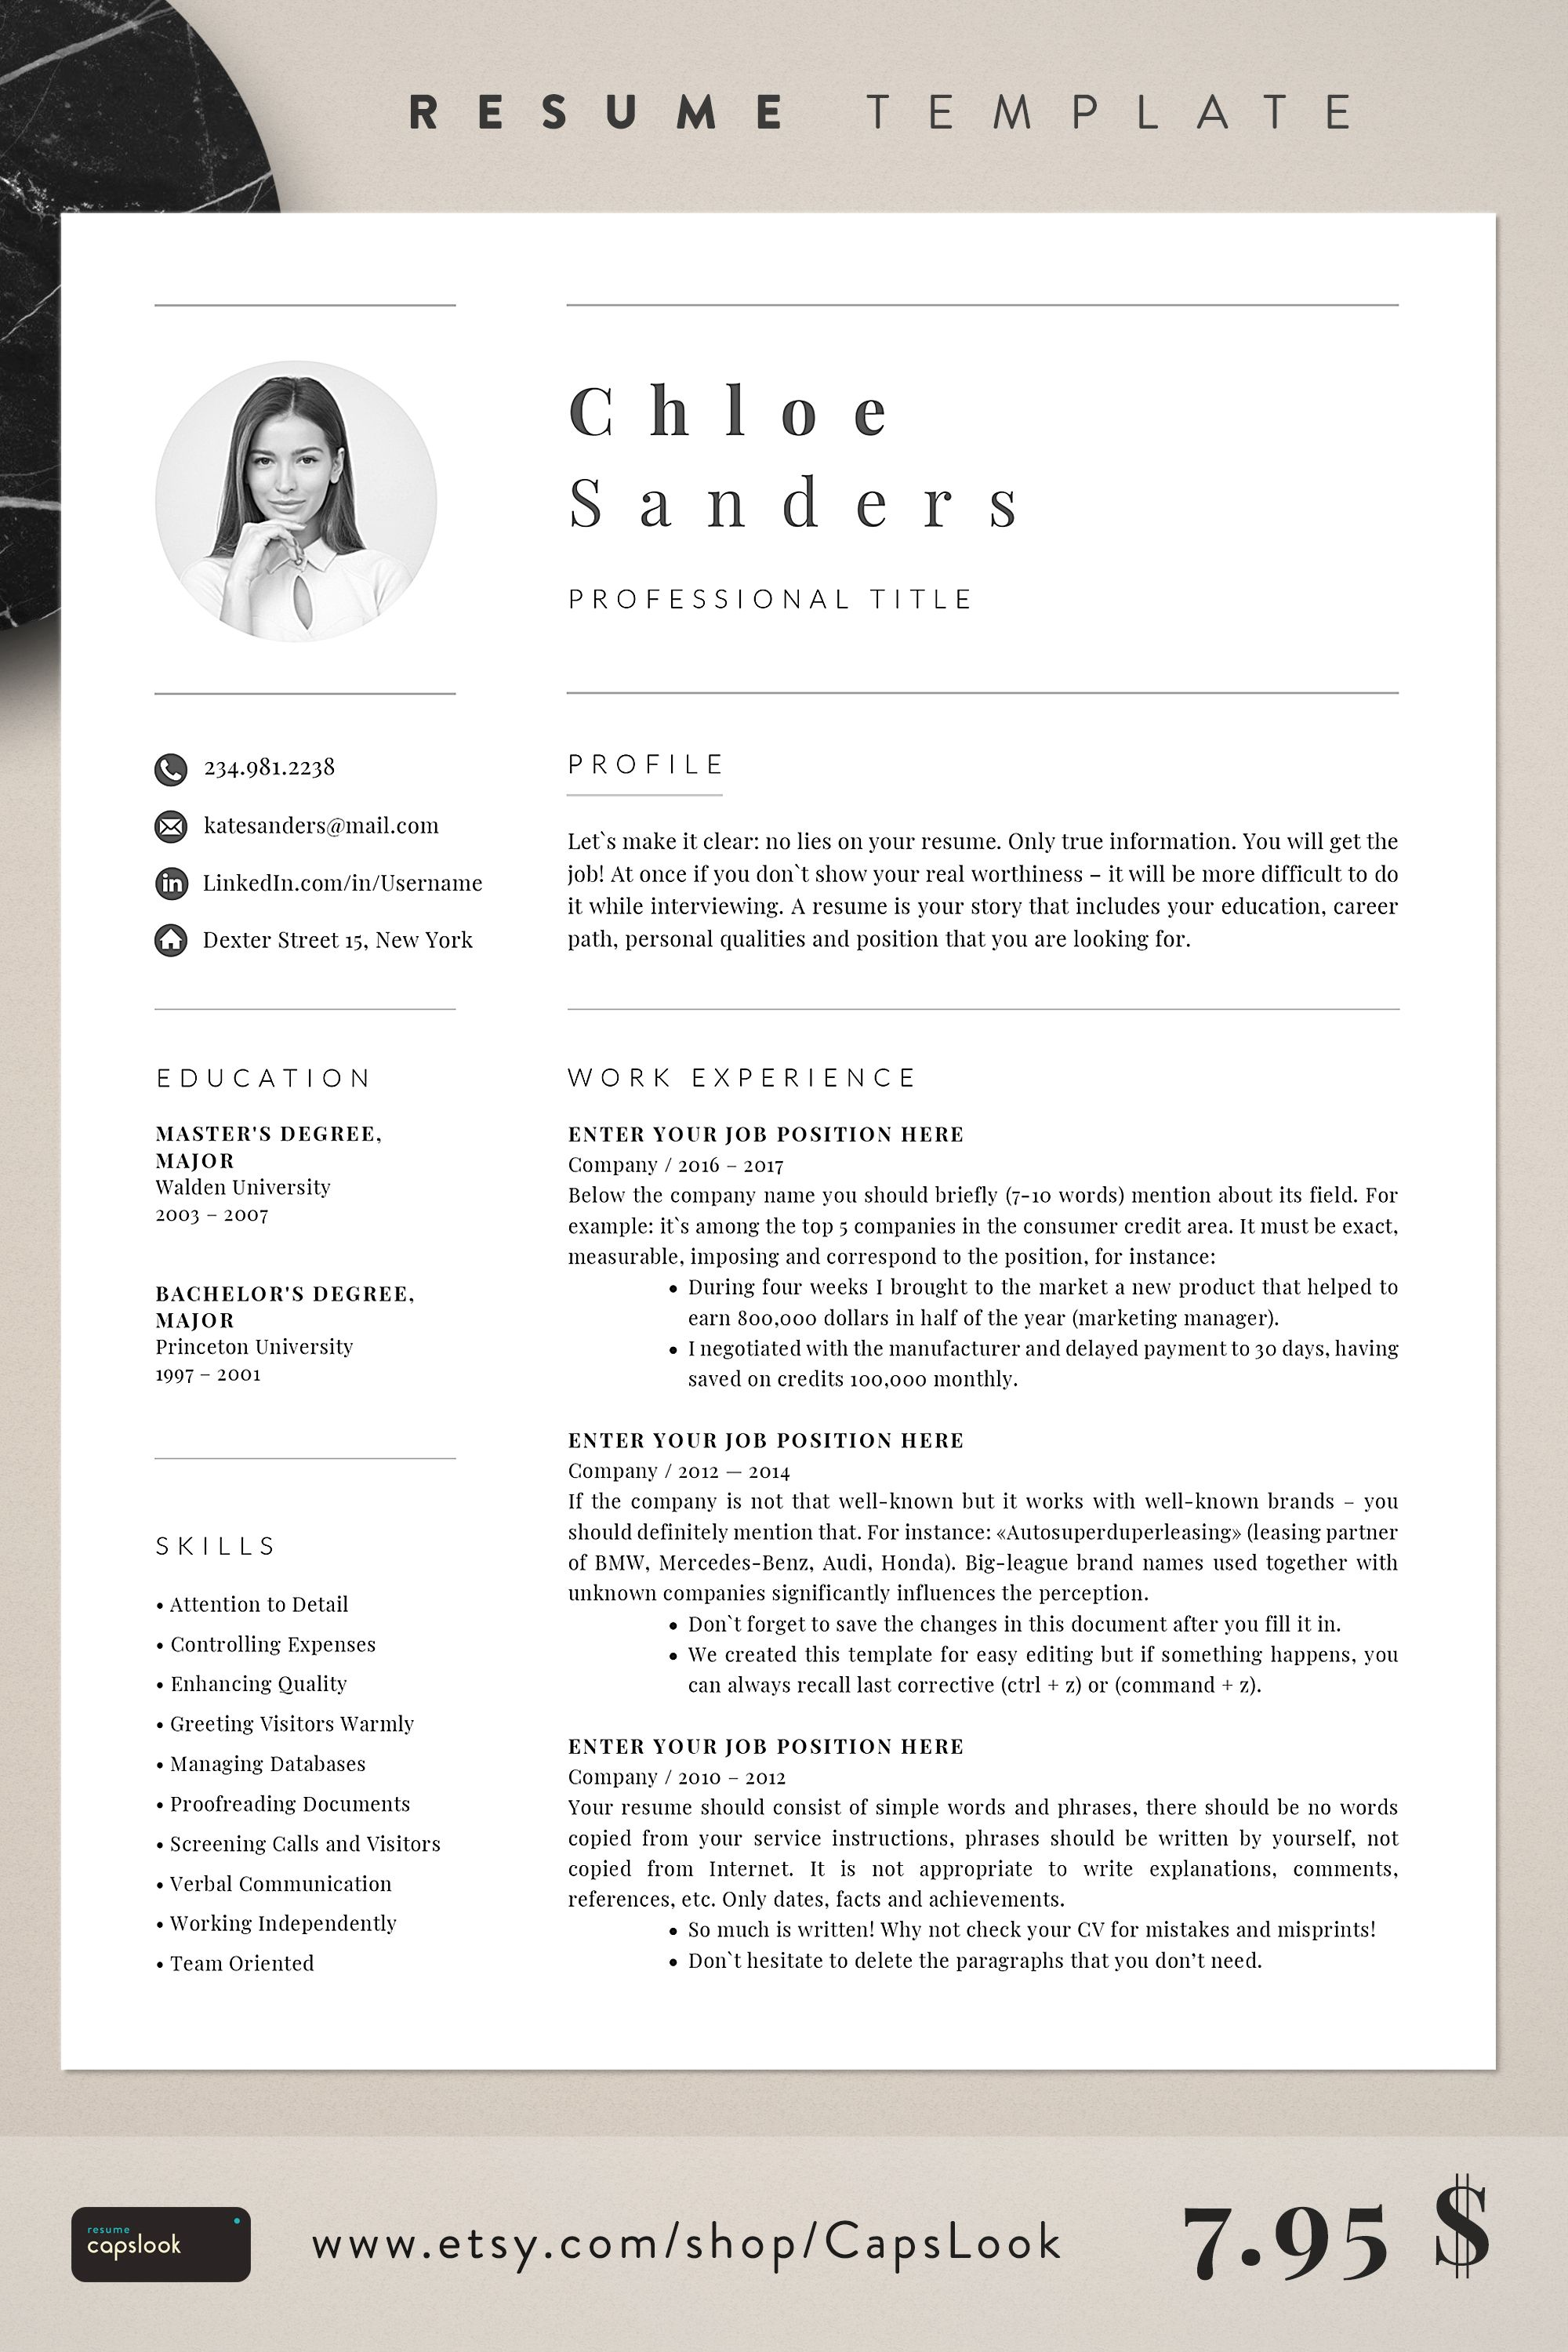 Resume Template Etsy 2019 Resume Template Etsy Resume Template Professional Resume Template